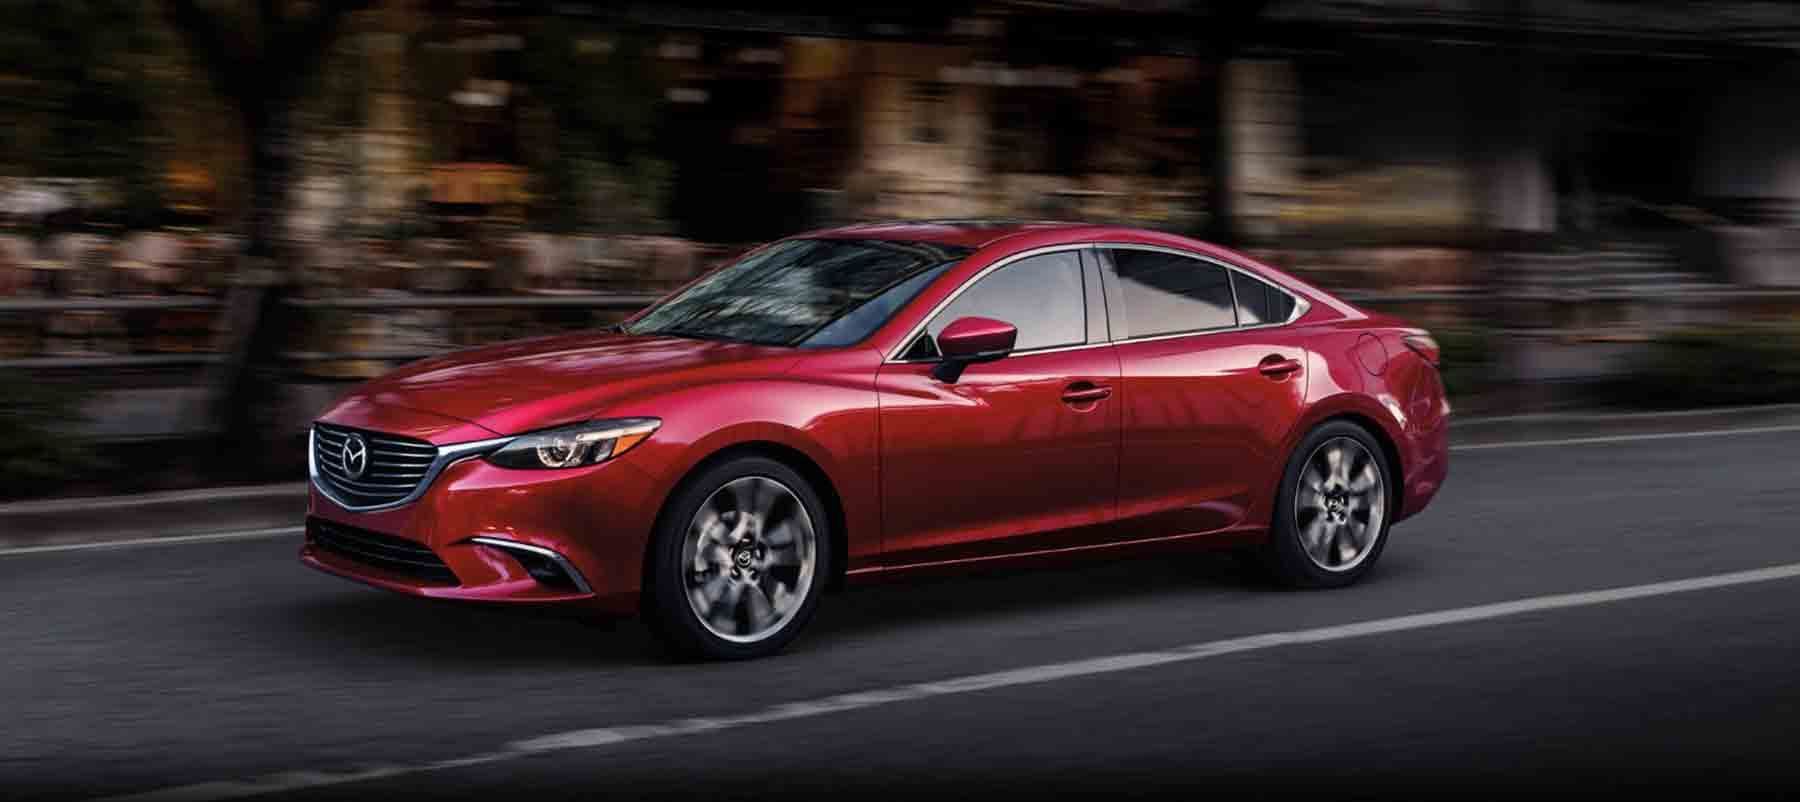 2017 Mazda6, DRIVING AS IT'S MEANT TO BE.